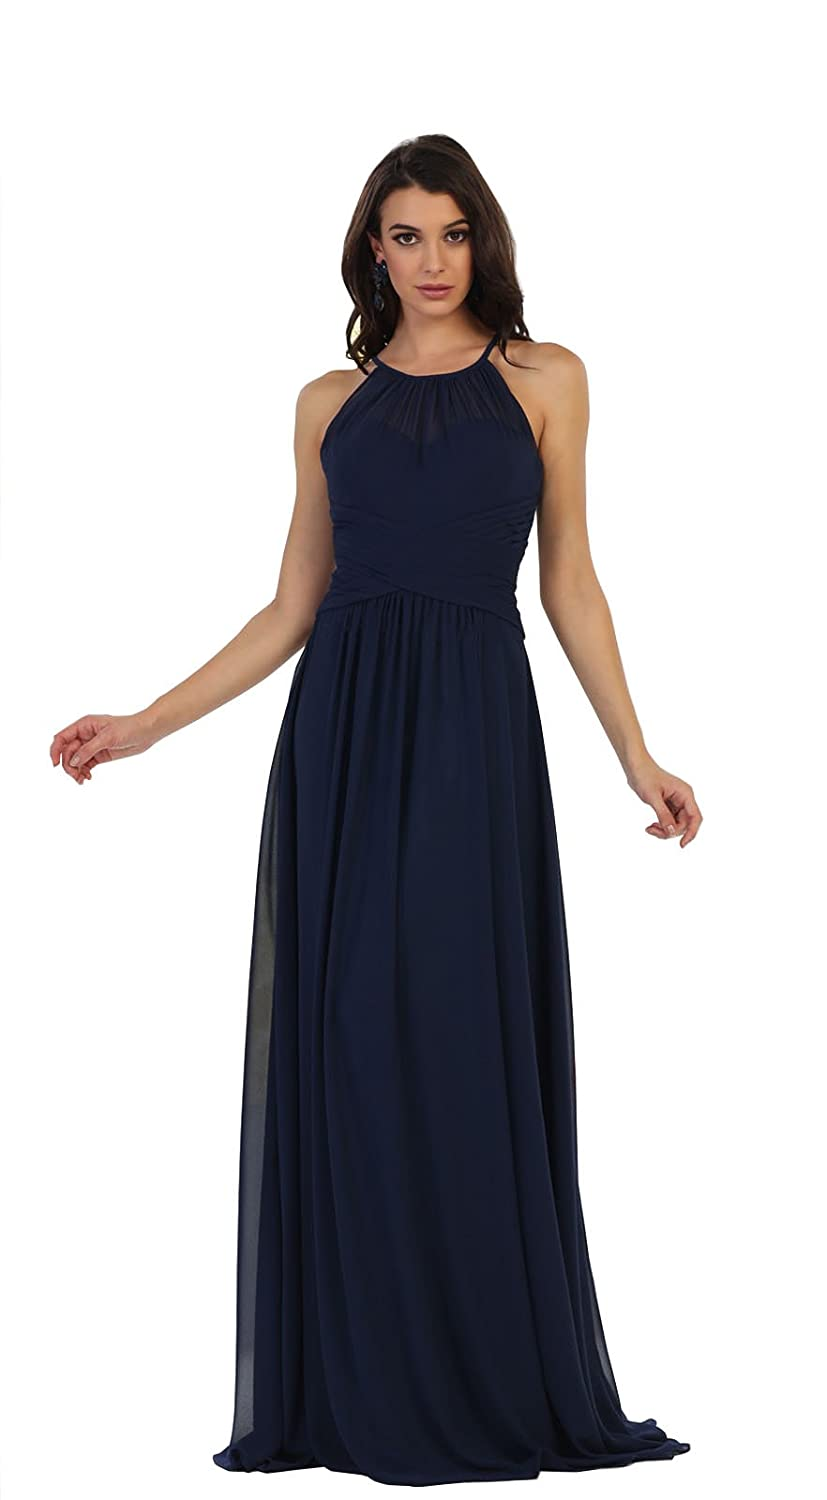 939354e1172 May Queen MQ1479 Simple Bridesmaids Evening Long Dress at Amazon Women s  Clothing store